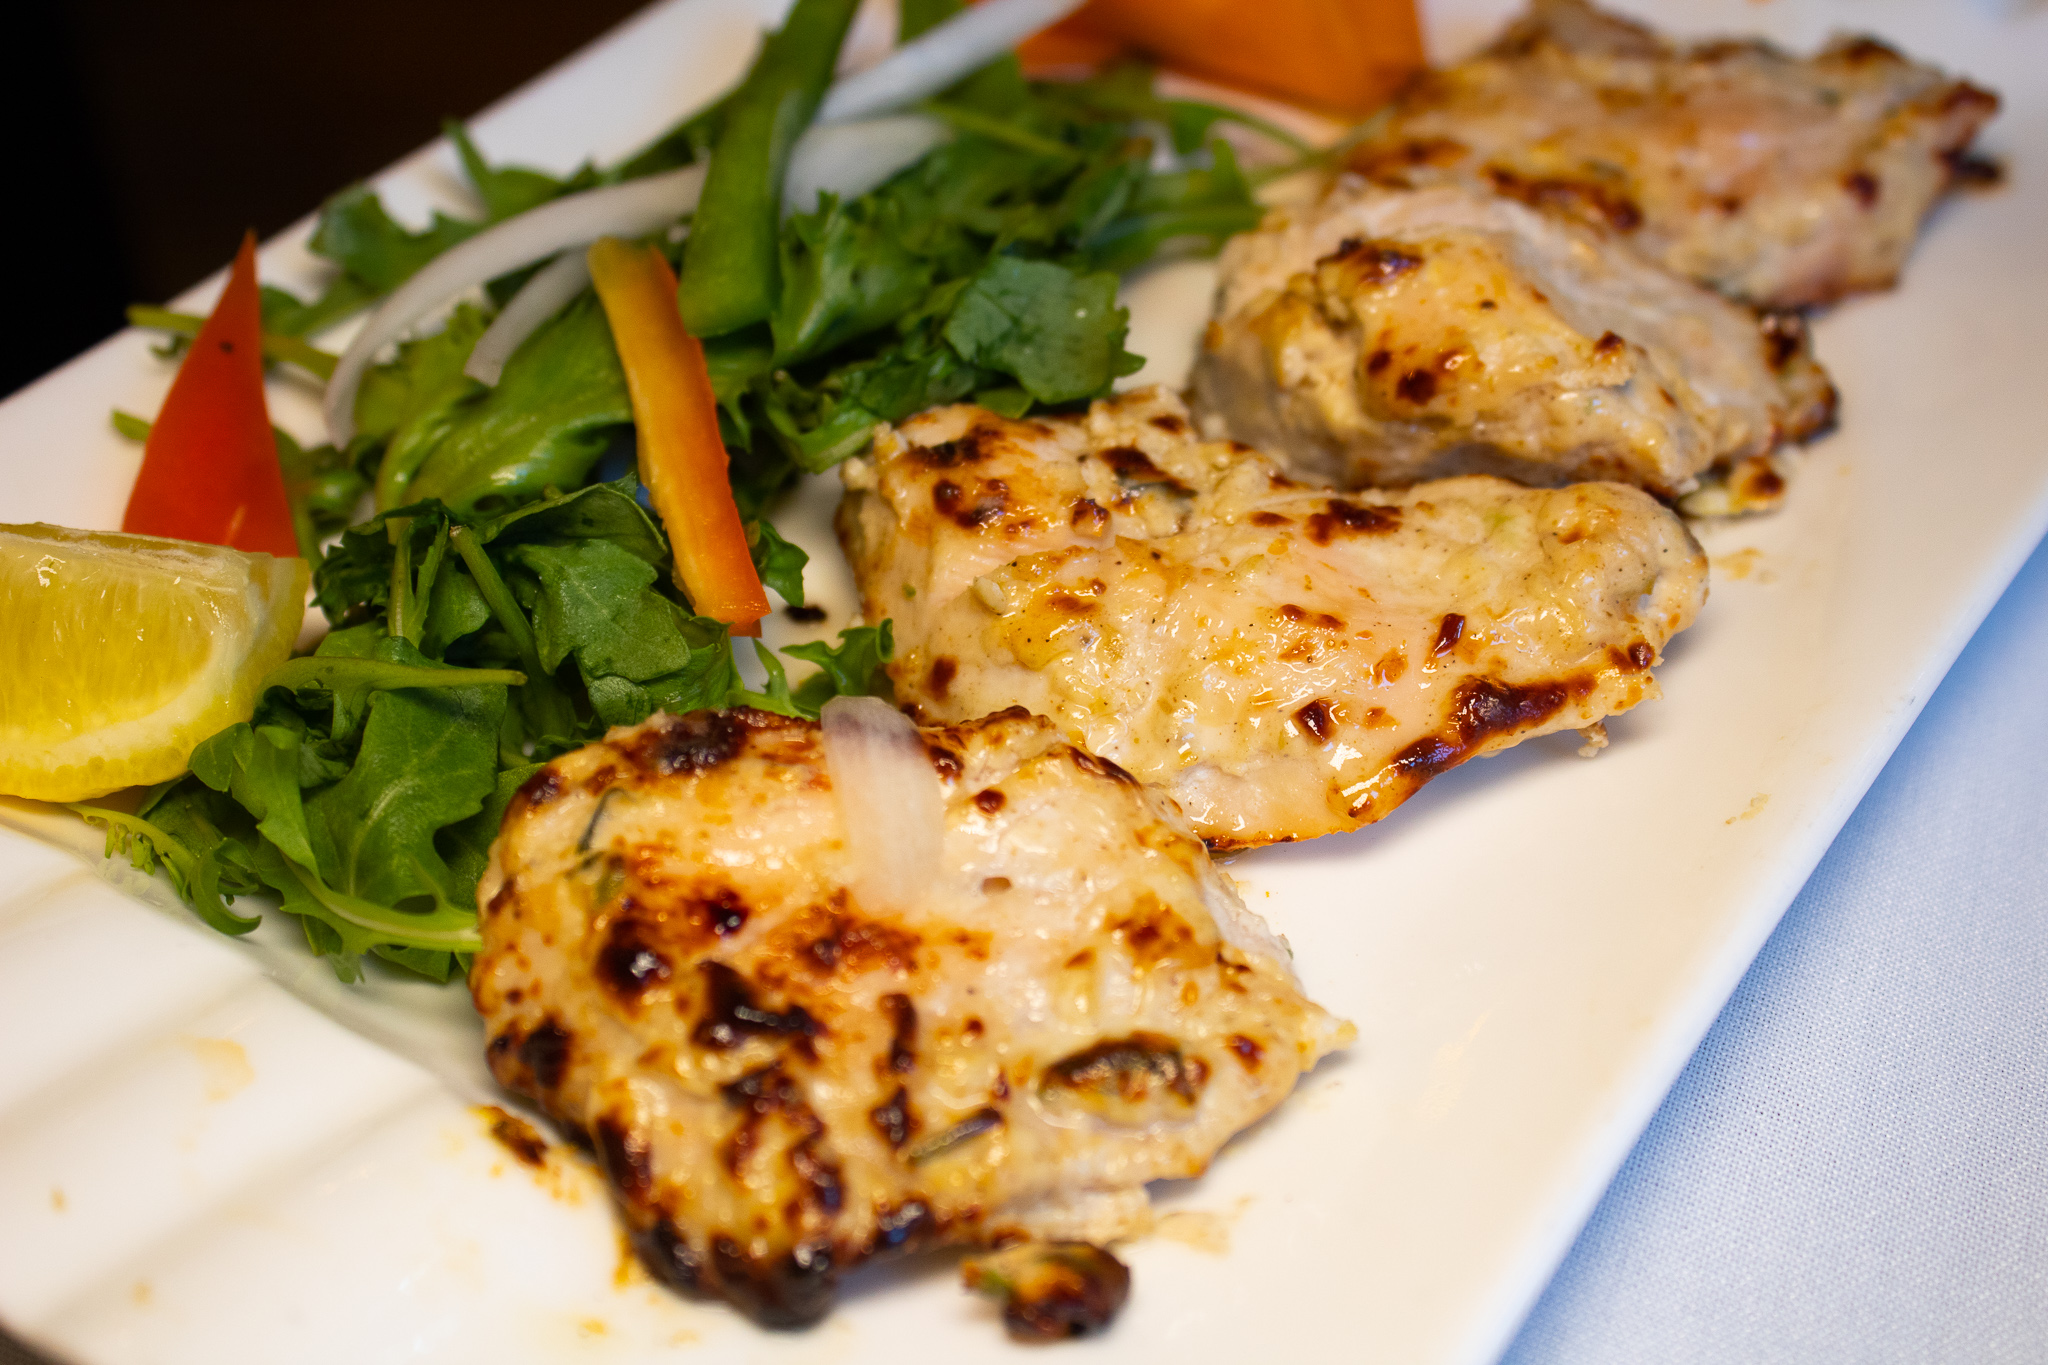 CHICKEN MALAI KABAB - creamy grilled cubes